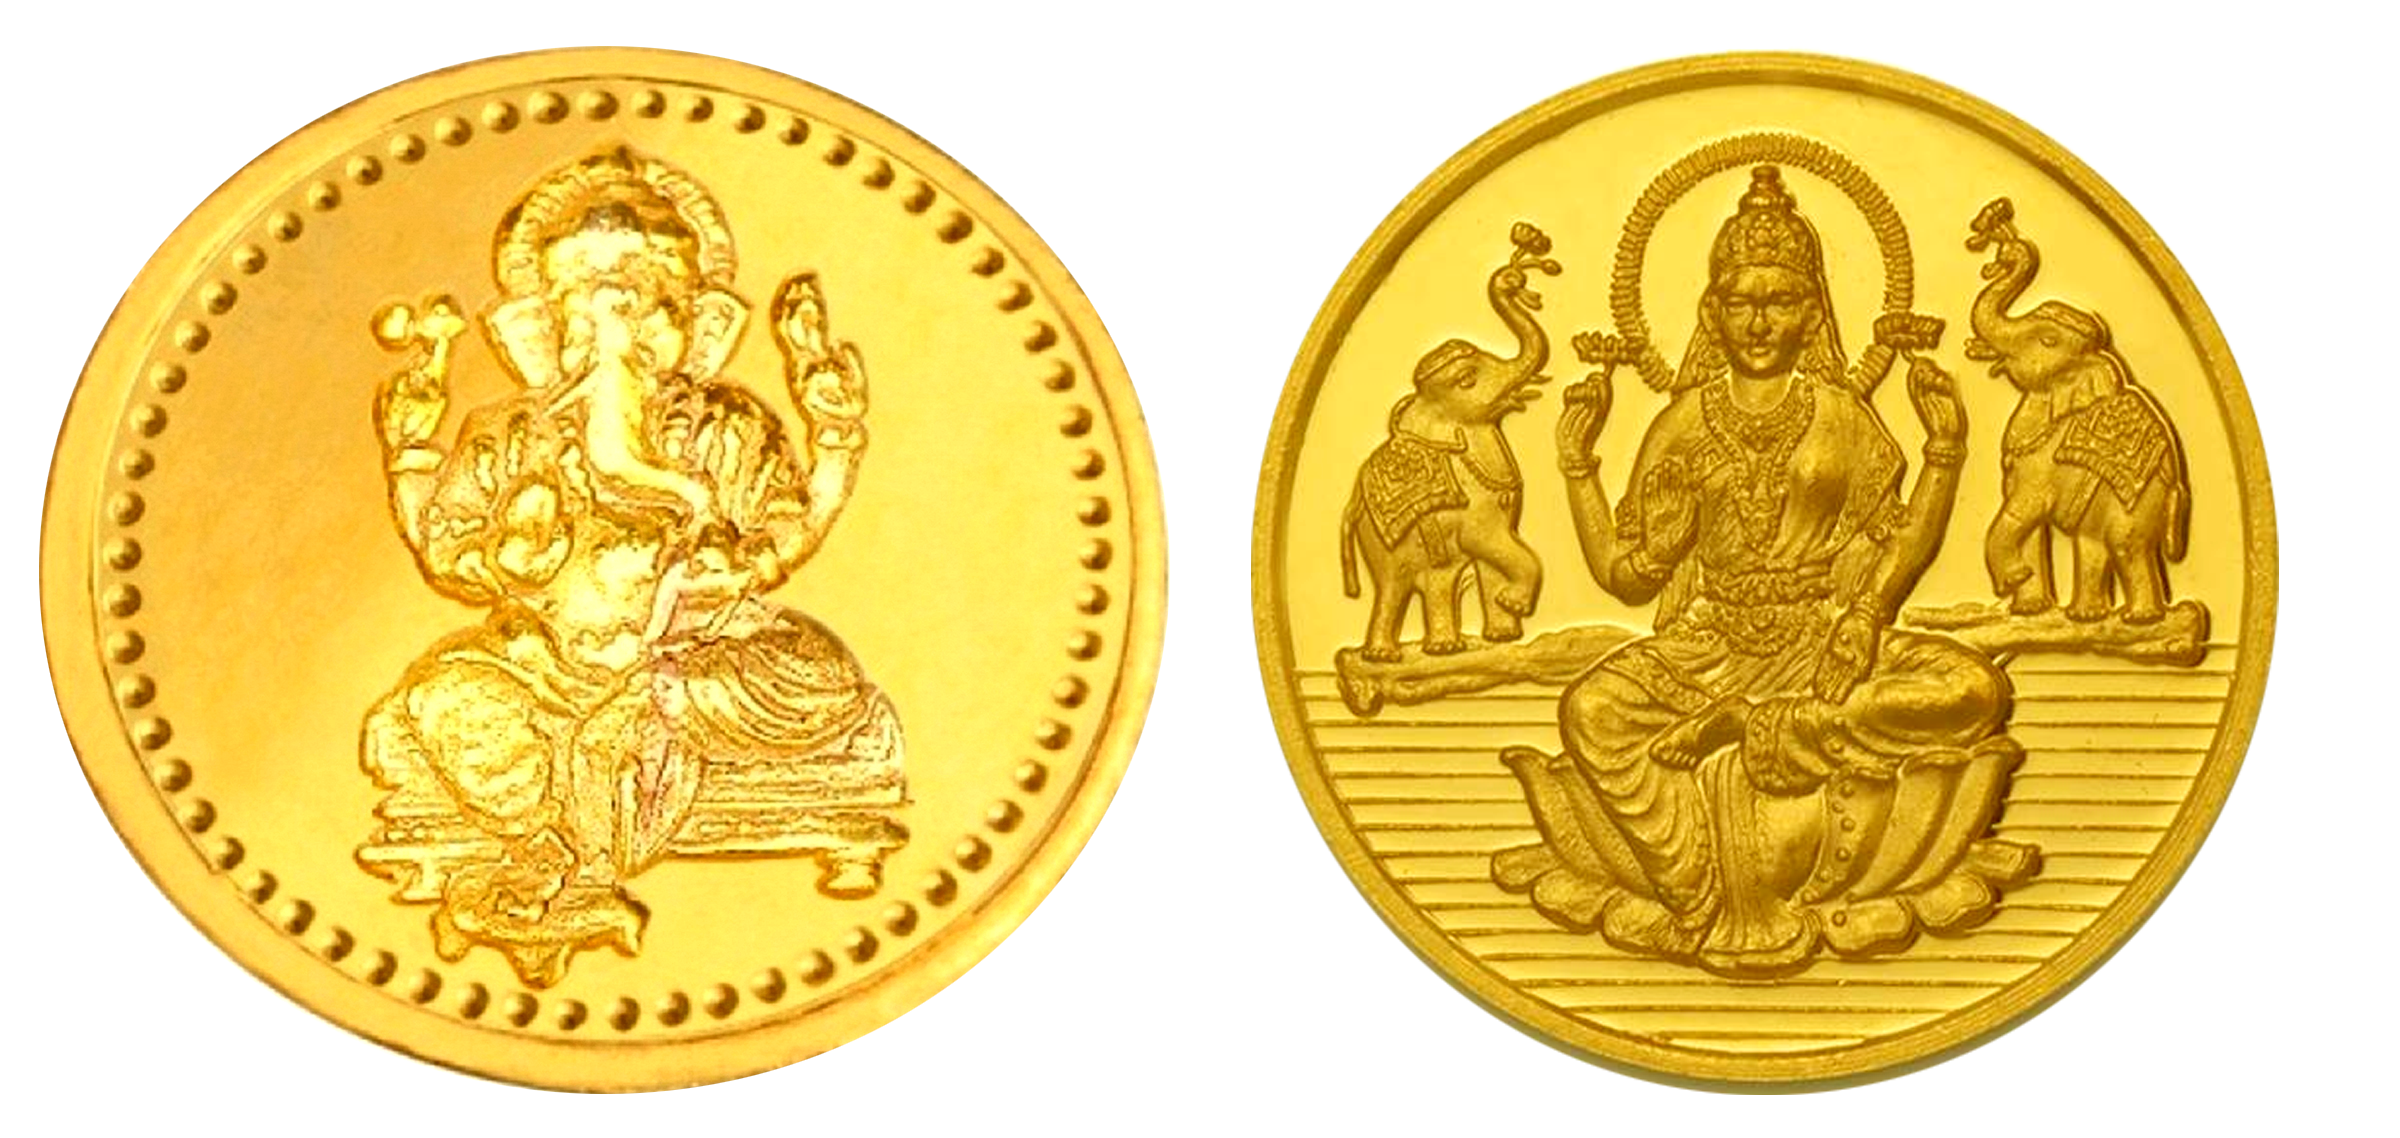 Laxmi and Ganesh images gold coin png - Coin HD PNG